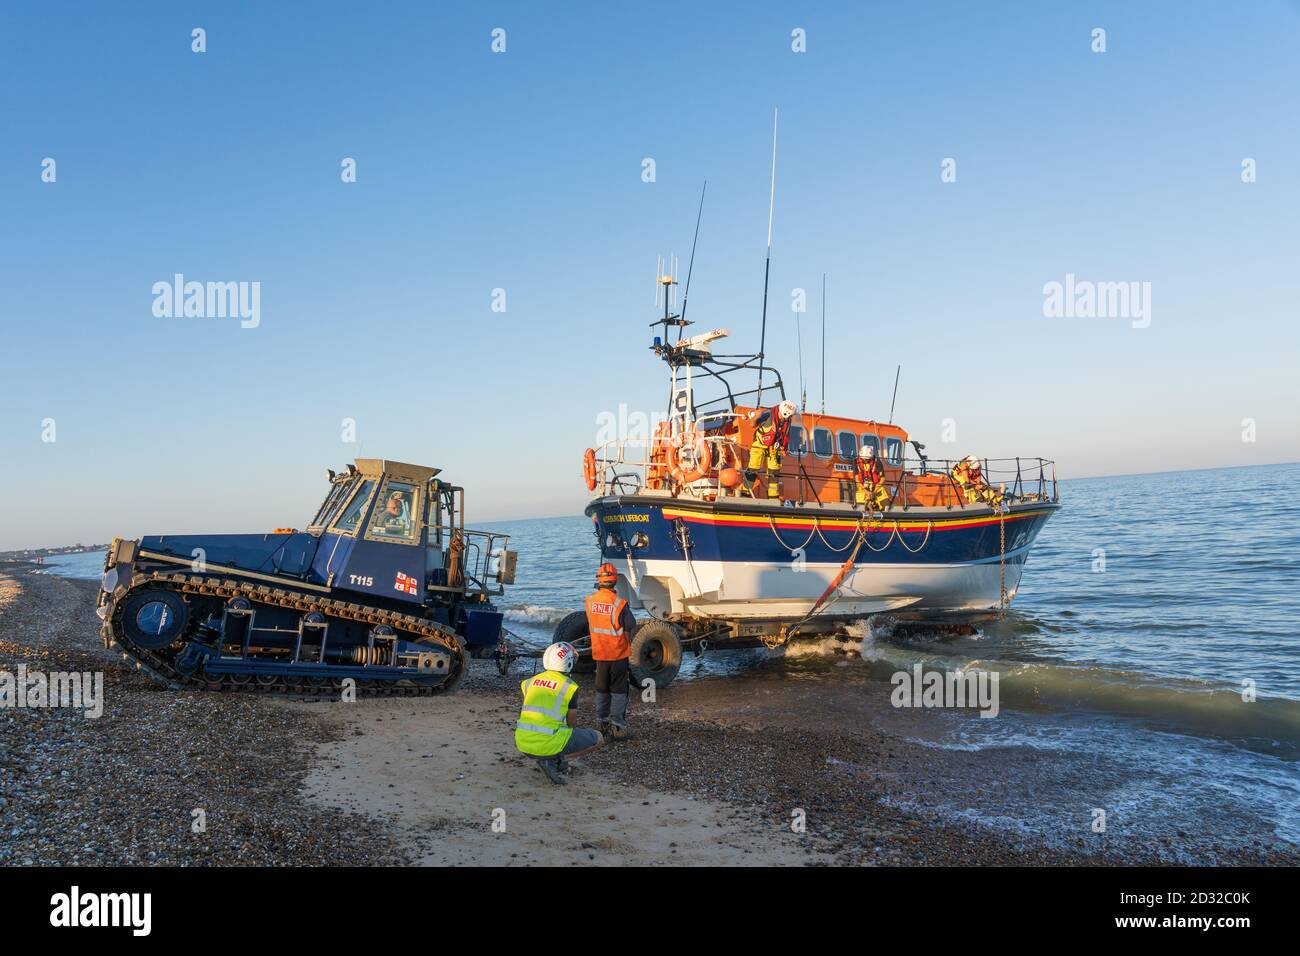 Aldeburgh, Suffolk. UK. September 2020. Tractor and crew prepare the Aldeburgh Lifeboat for launch. Stock Photo